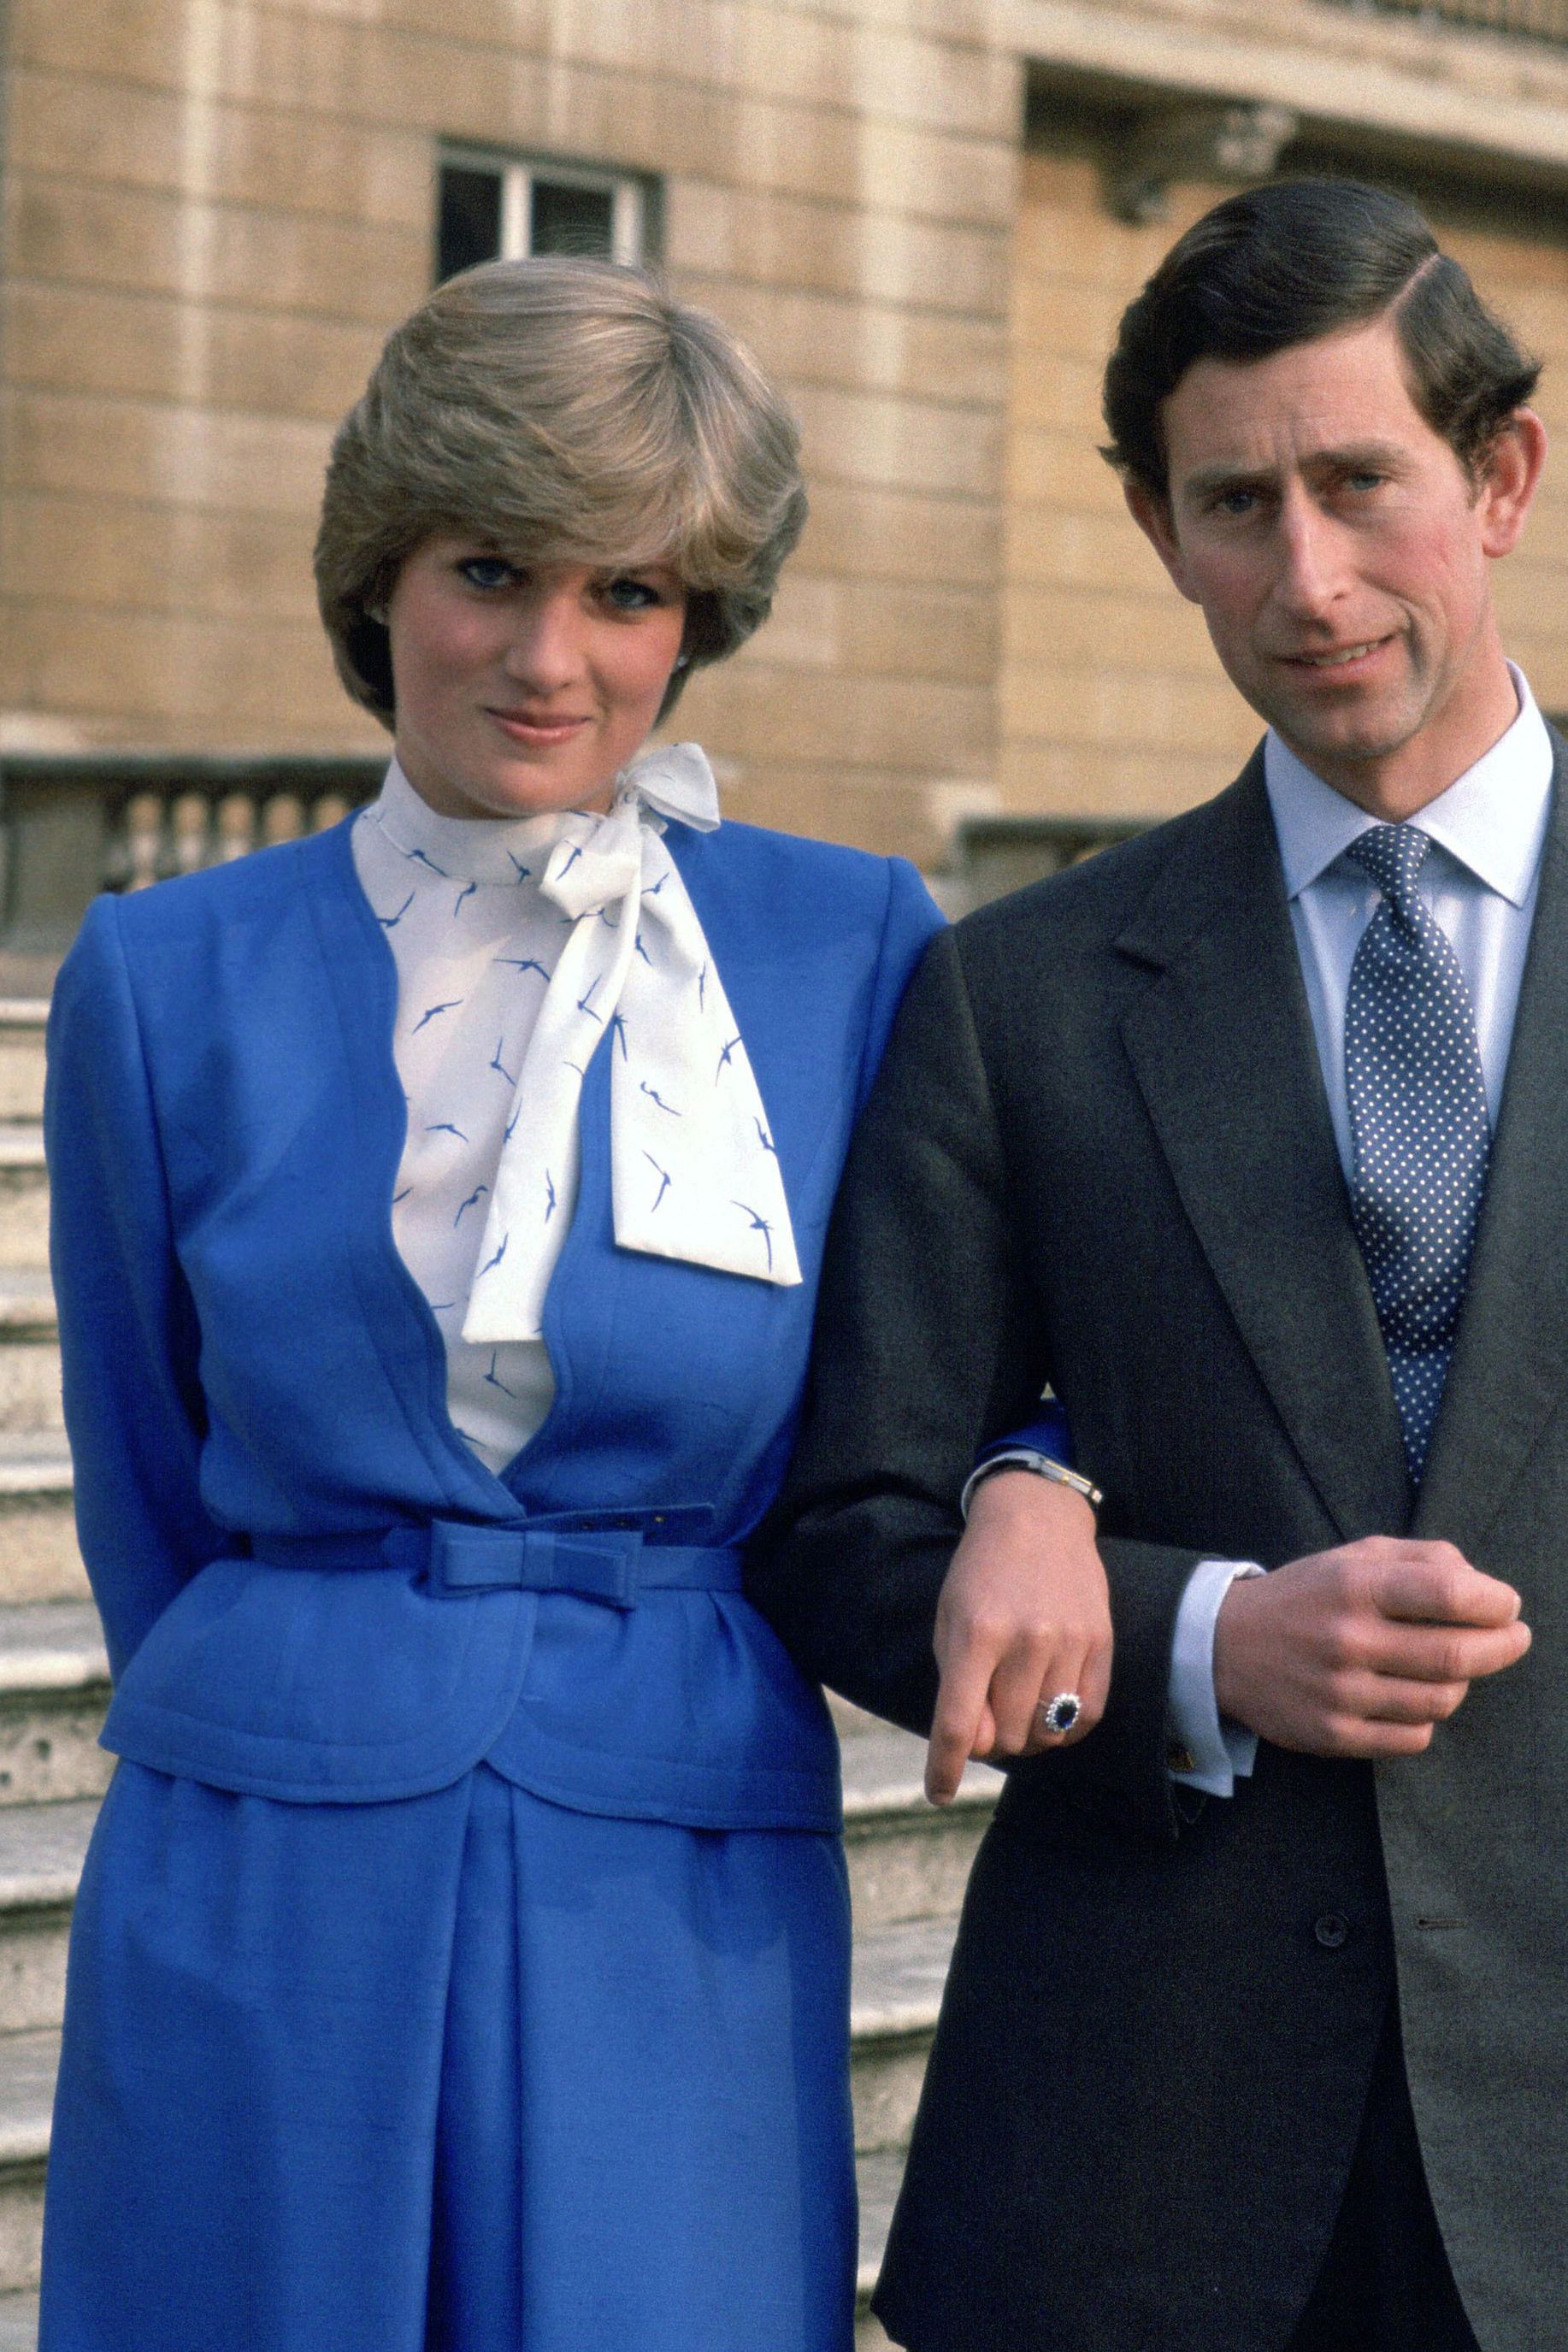 Princess Diana 1981 Engagement